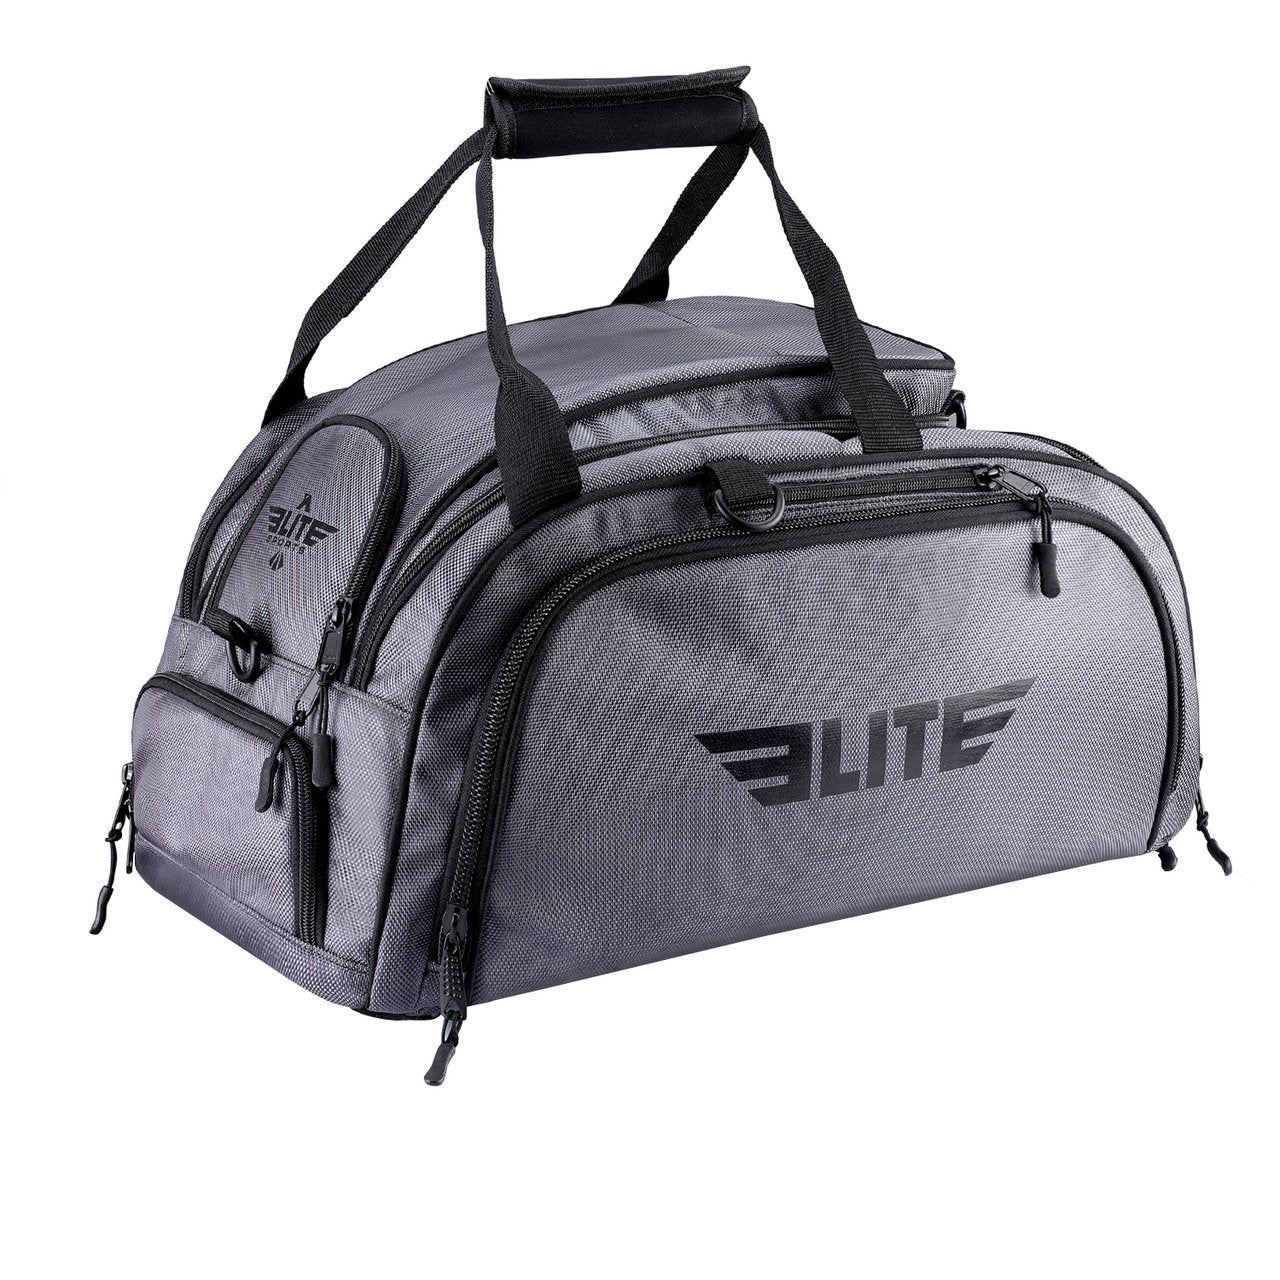 Load image into Gallery viewer, Elite Sports Warrior Series Large Gray Boxing MMA BJJ Gear Gym Duffel Bag & Backpack